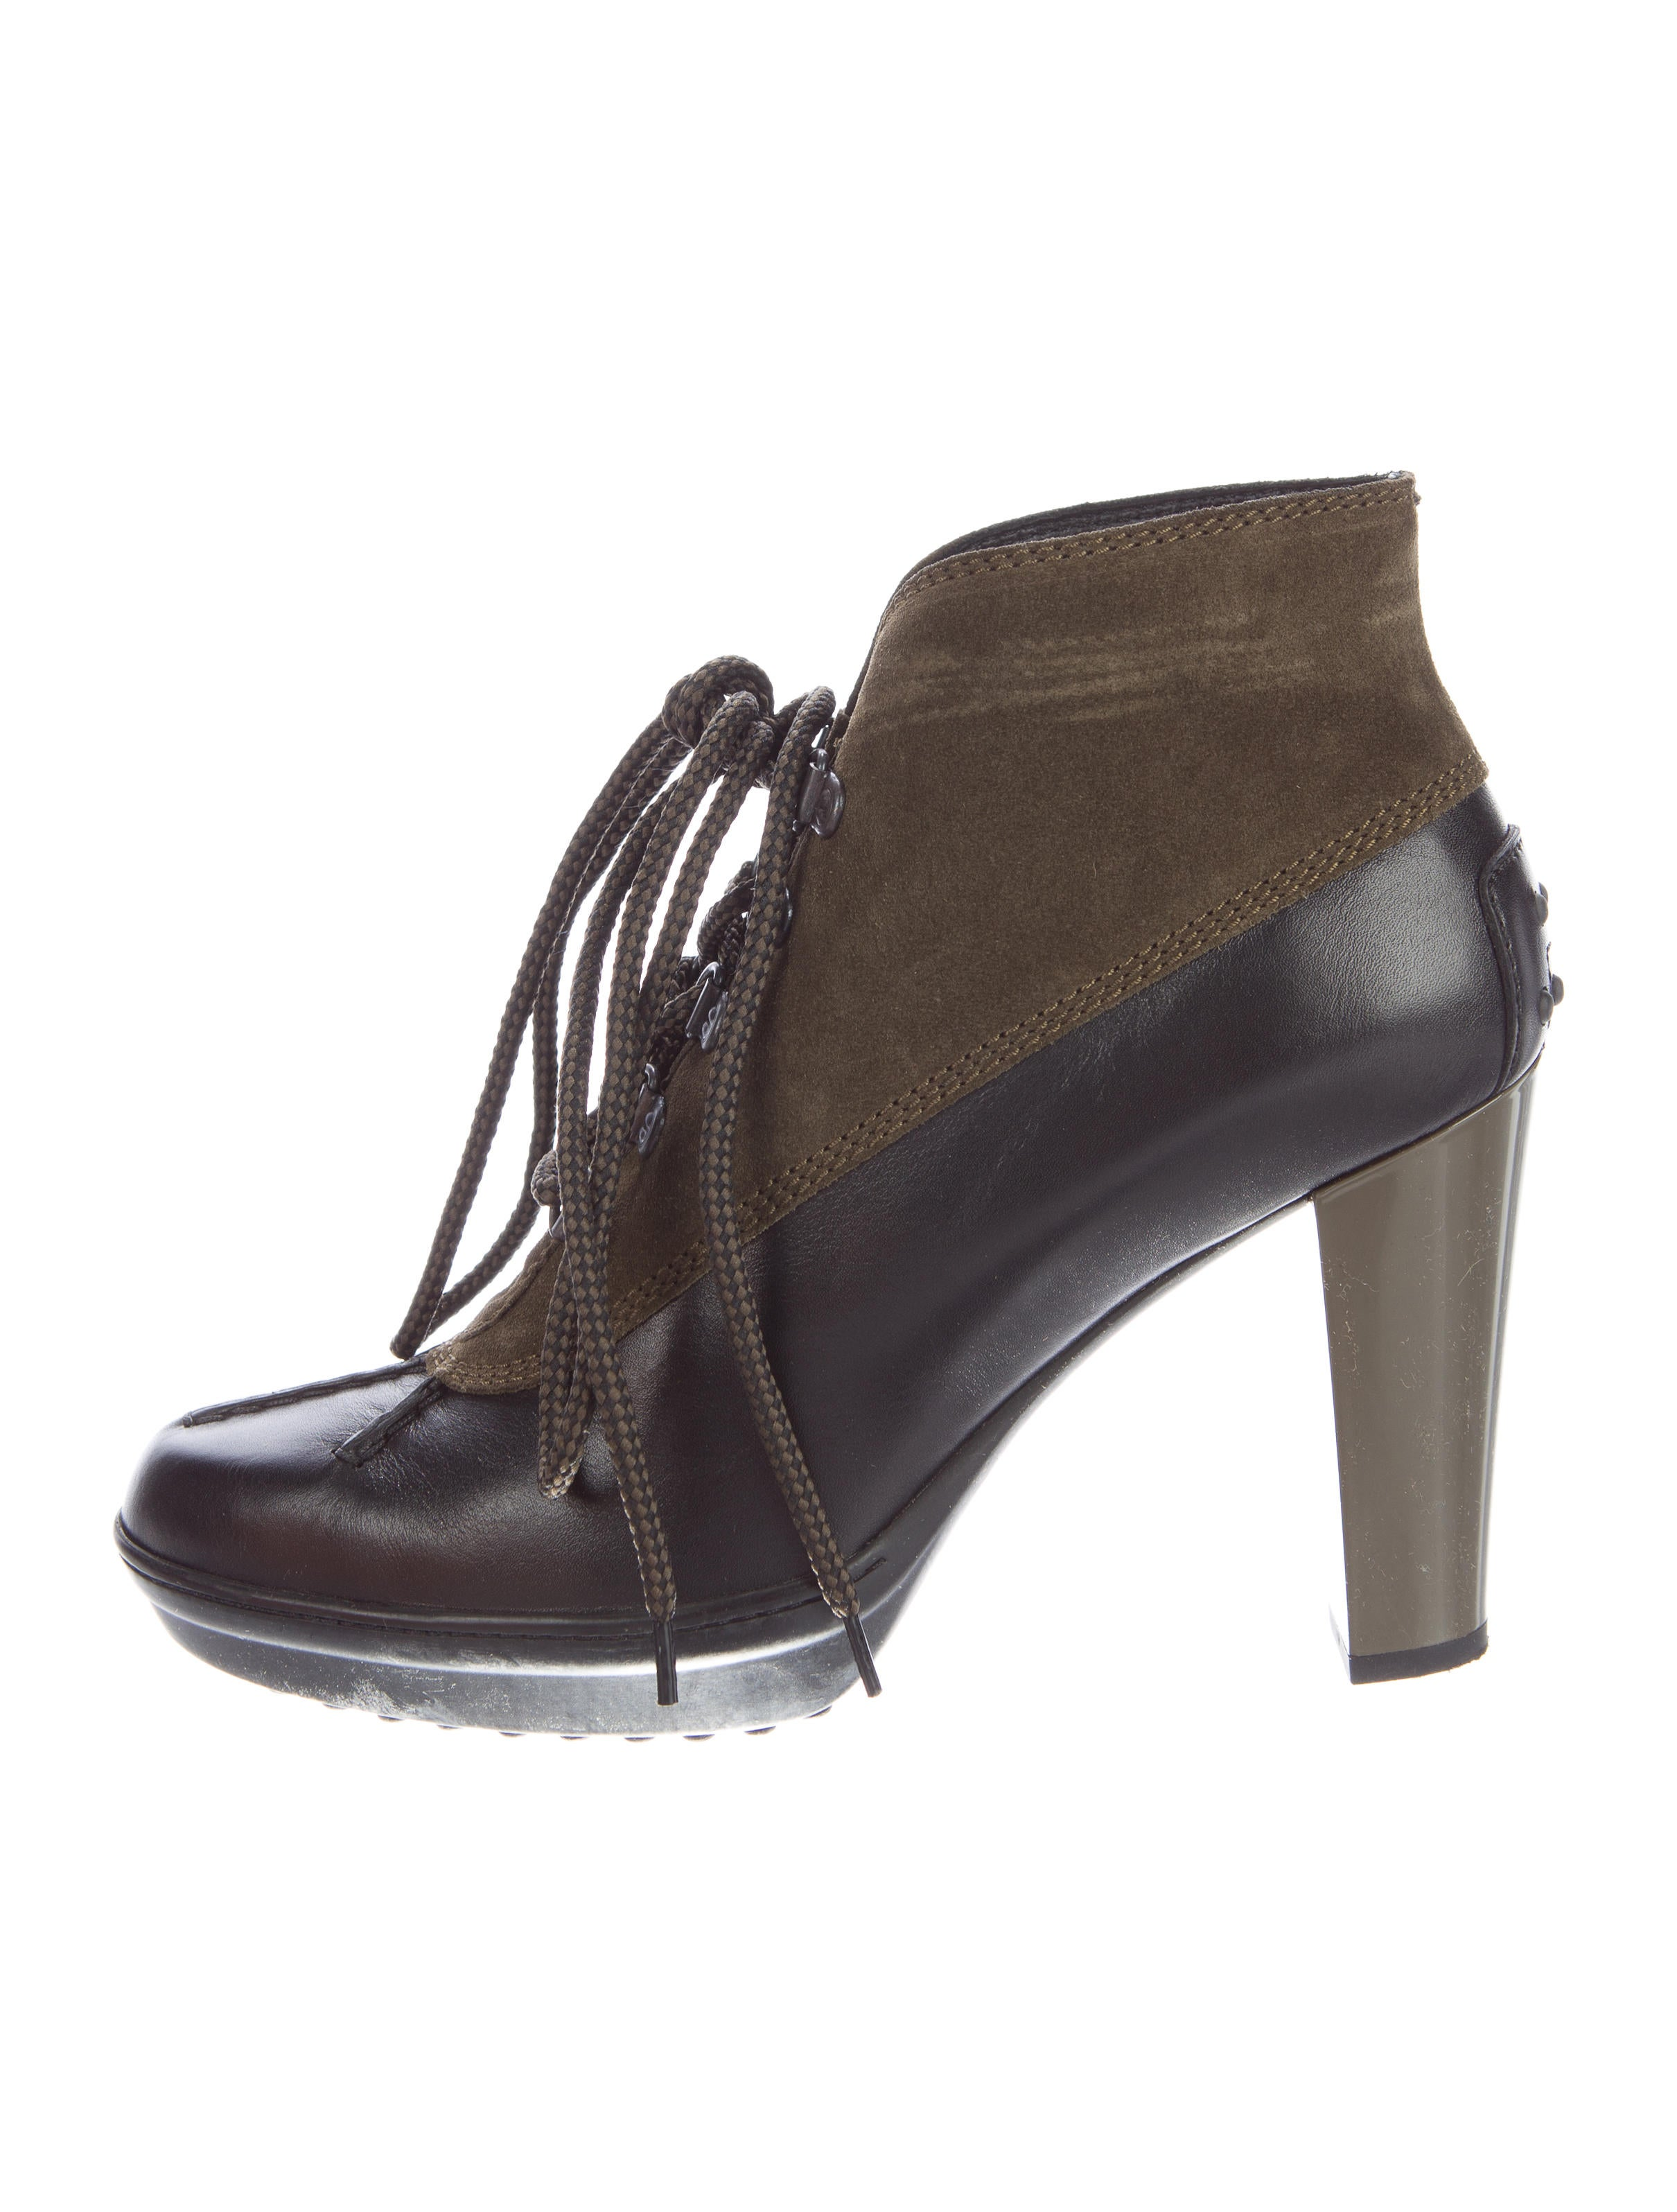 Todu0026#39;s Lace-Up Ankle Boots - Shoes - TOD35598 | The RealReal